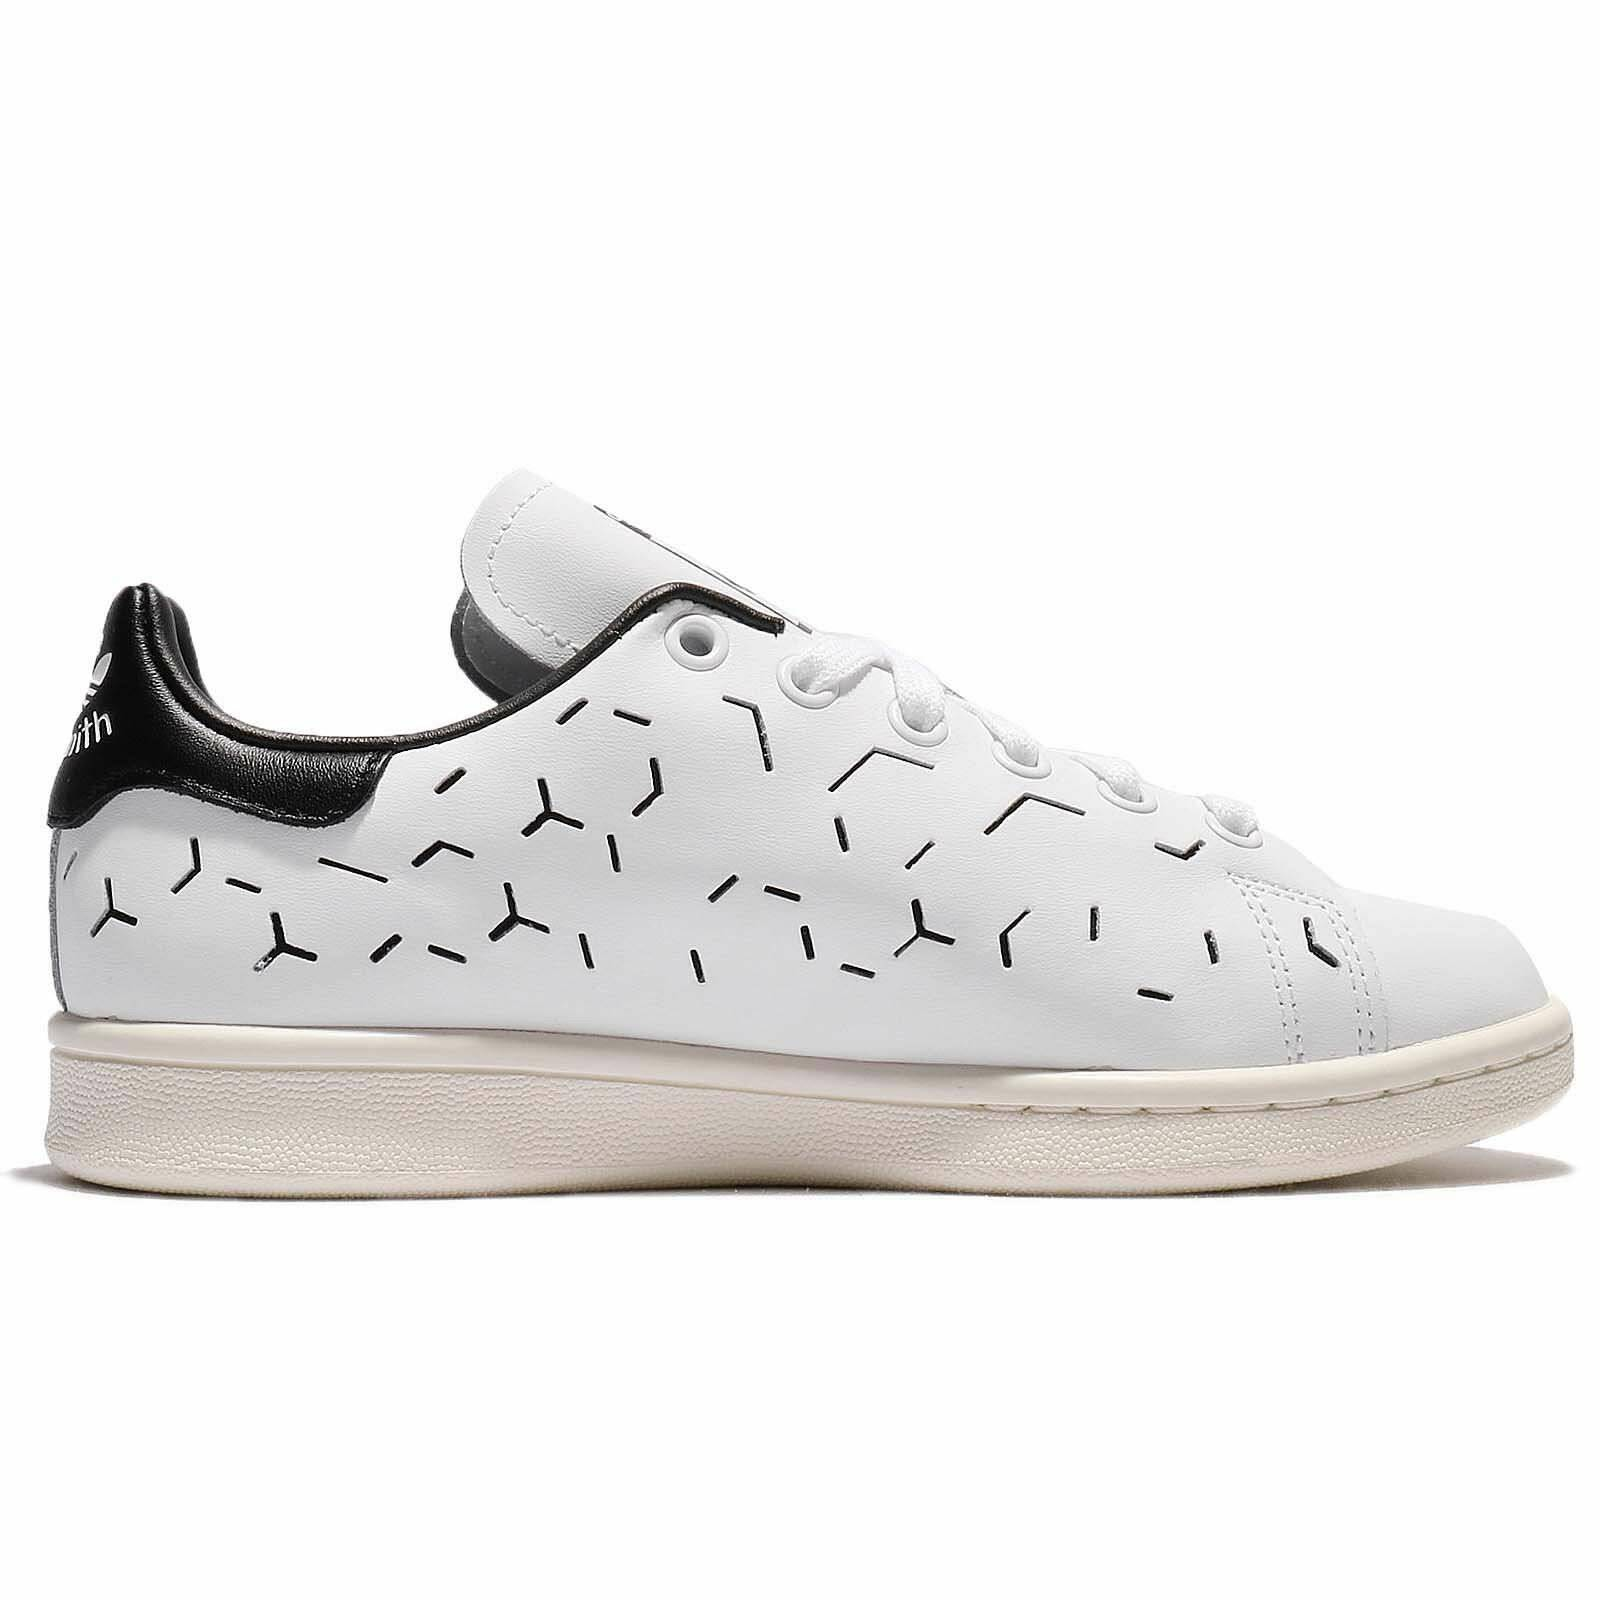 the best attitude 67df4 1d293 ... Adidas Adidas Adidas Originals Women s Stan Smith Shoes Size 6 us  BZ0393 a3f732 ...